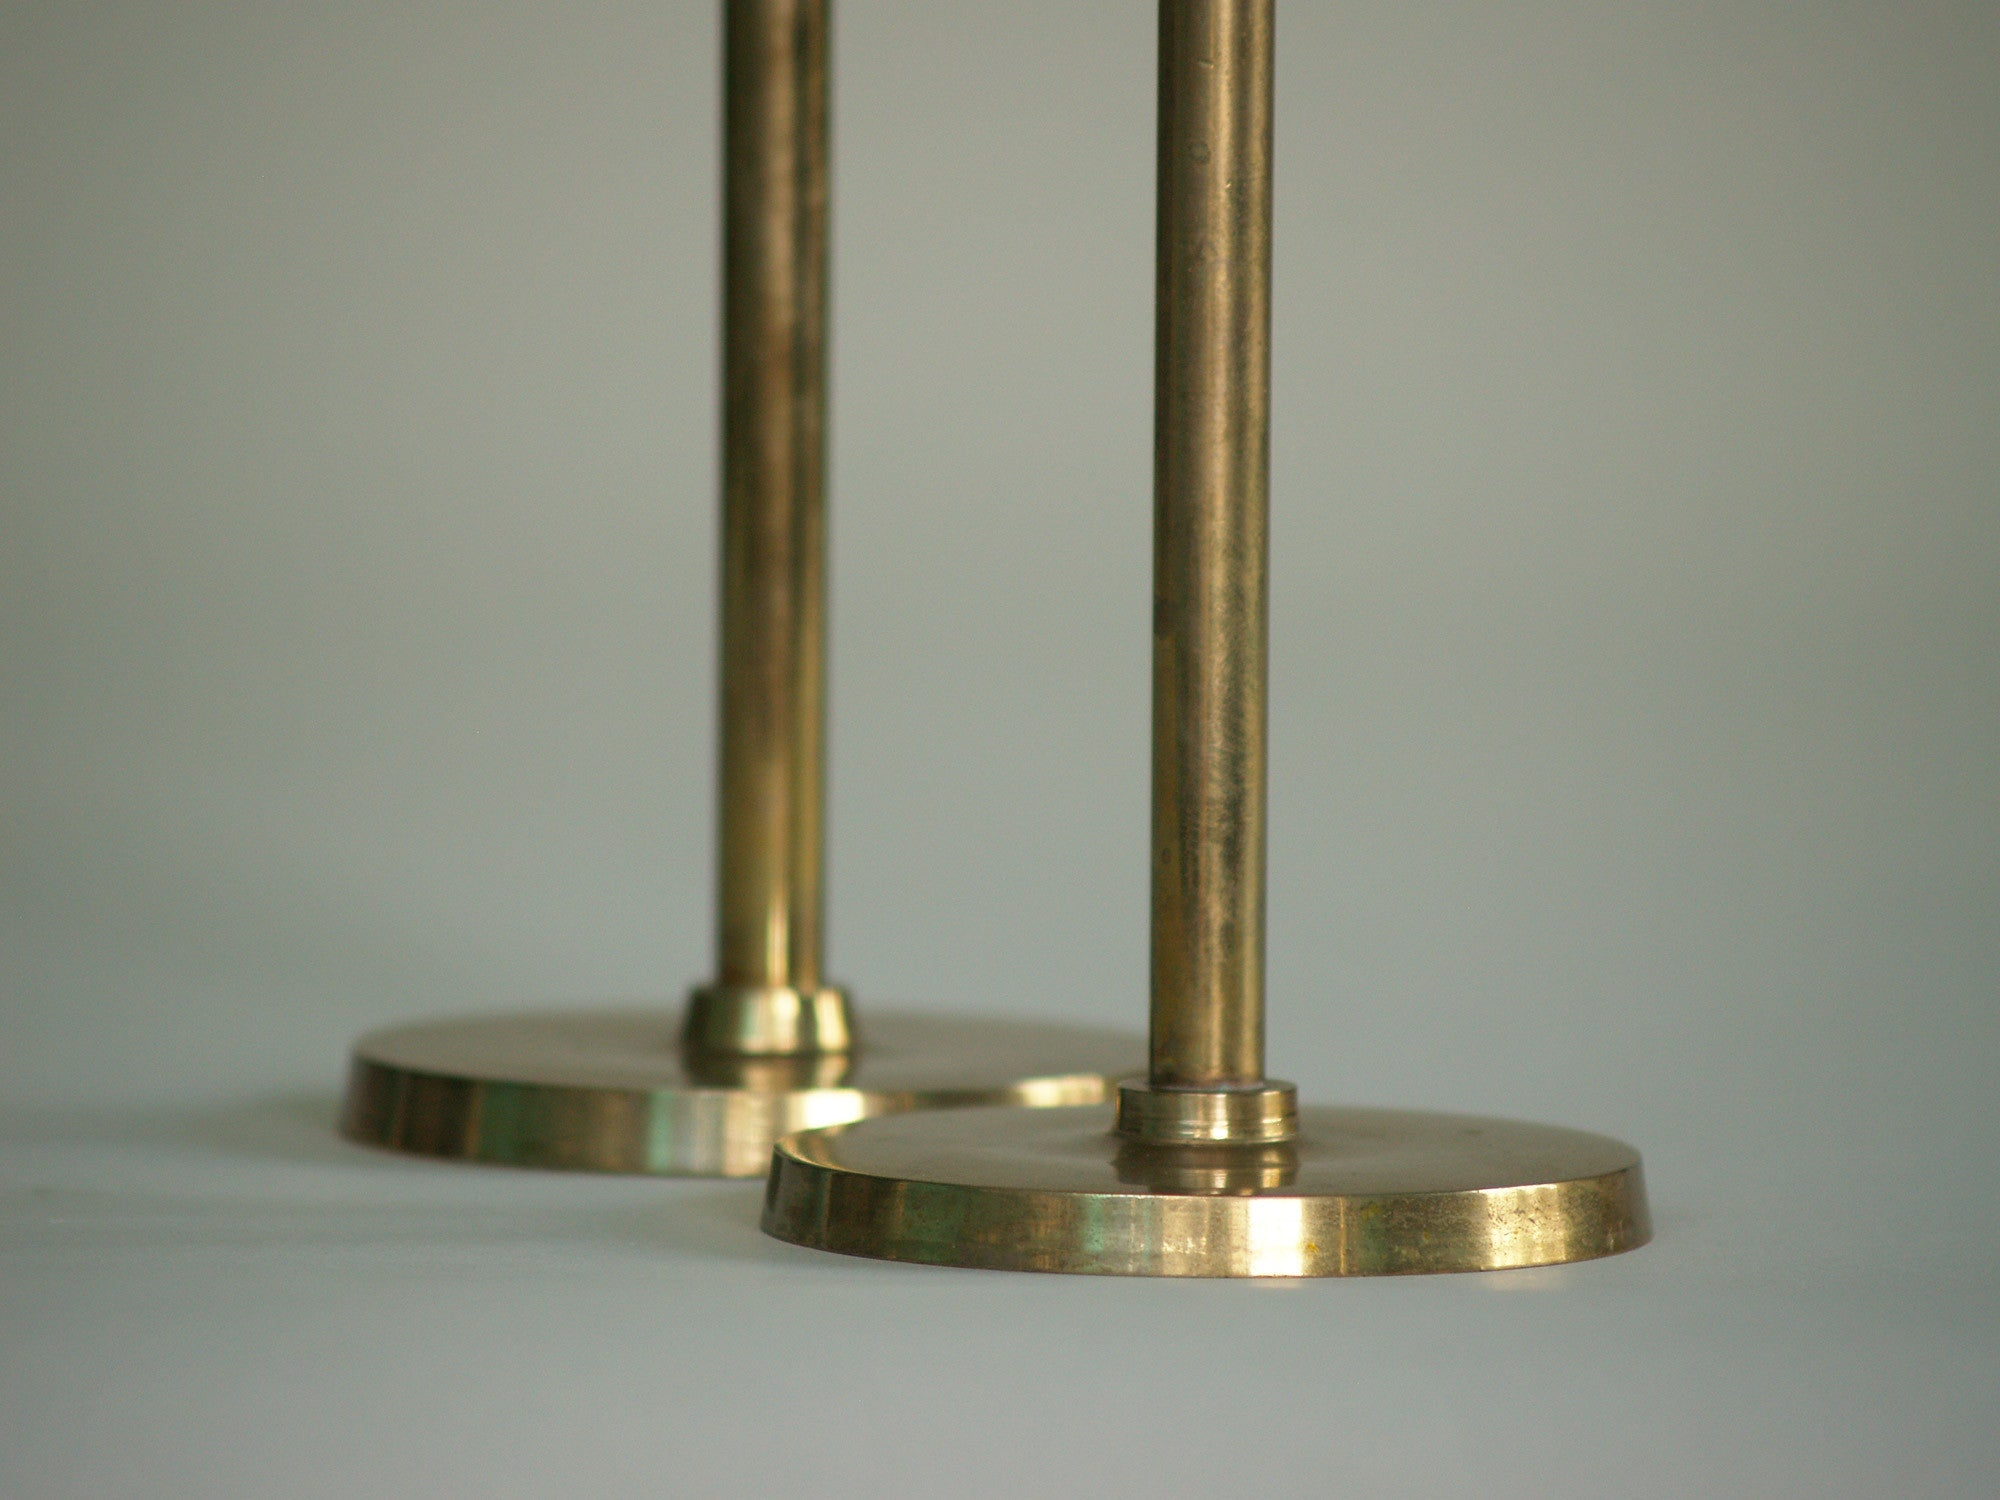 Paire de flambeaux Néoclassiques, Finlande (vers 1950)..Pair of  Neoclassical Candle holders, Finland (circa 1950)